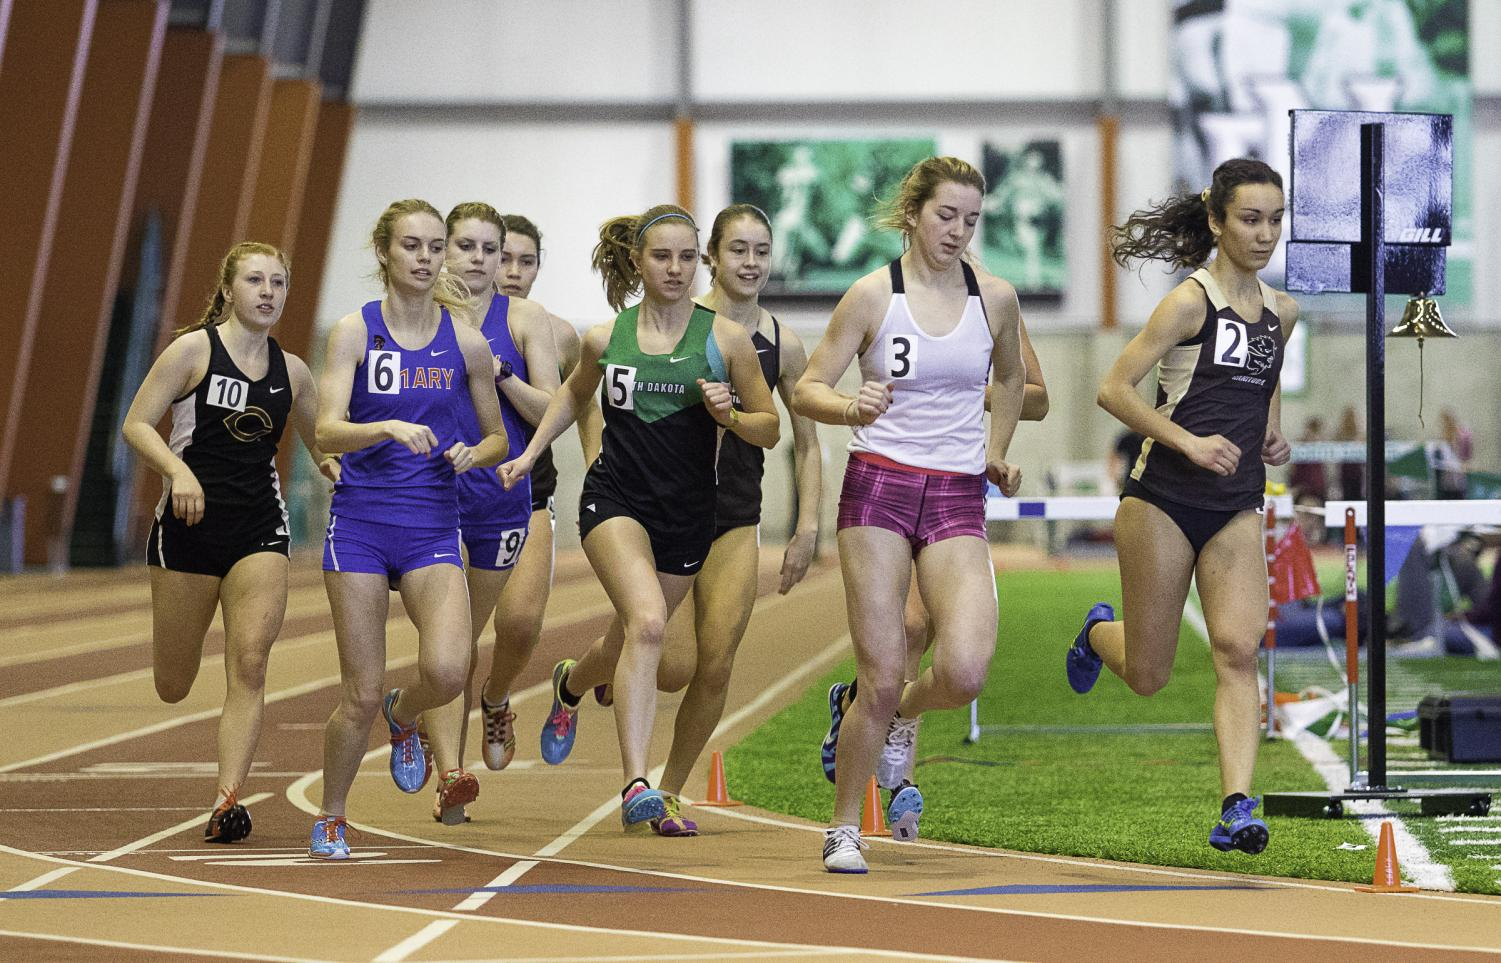 A long winter and cold, snowy spring have hampered the UND track and field teams' practice and competitive efforts.